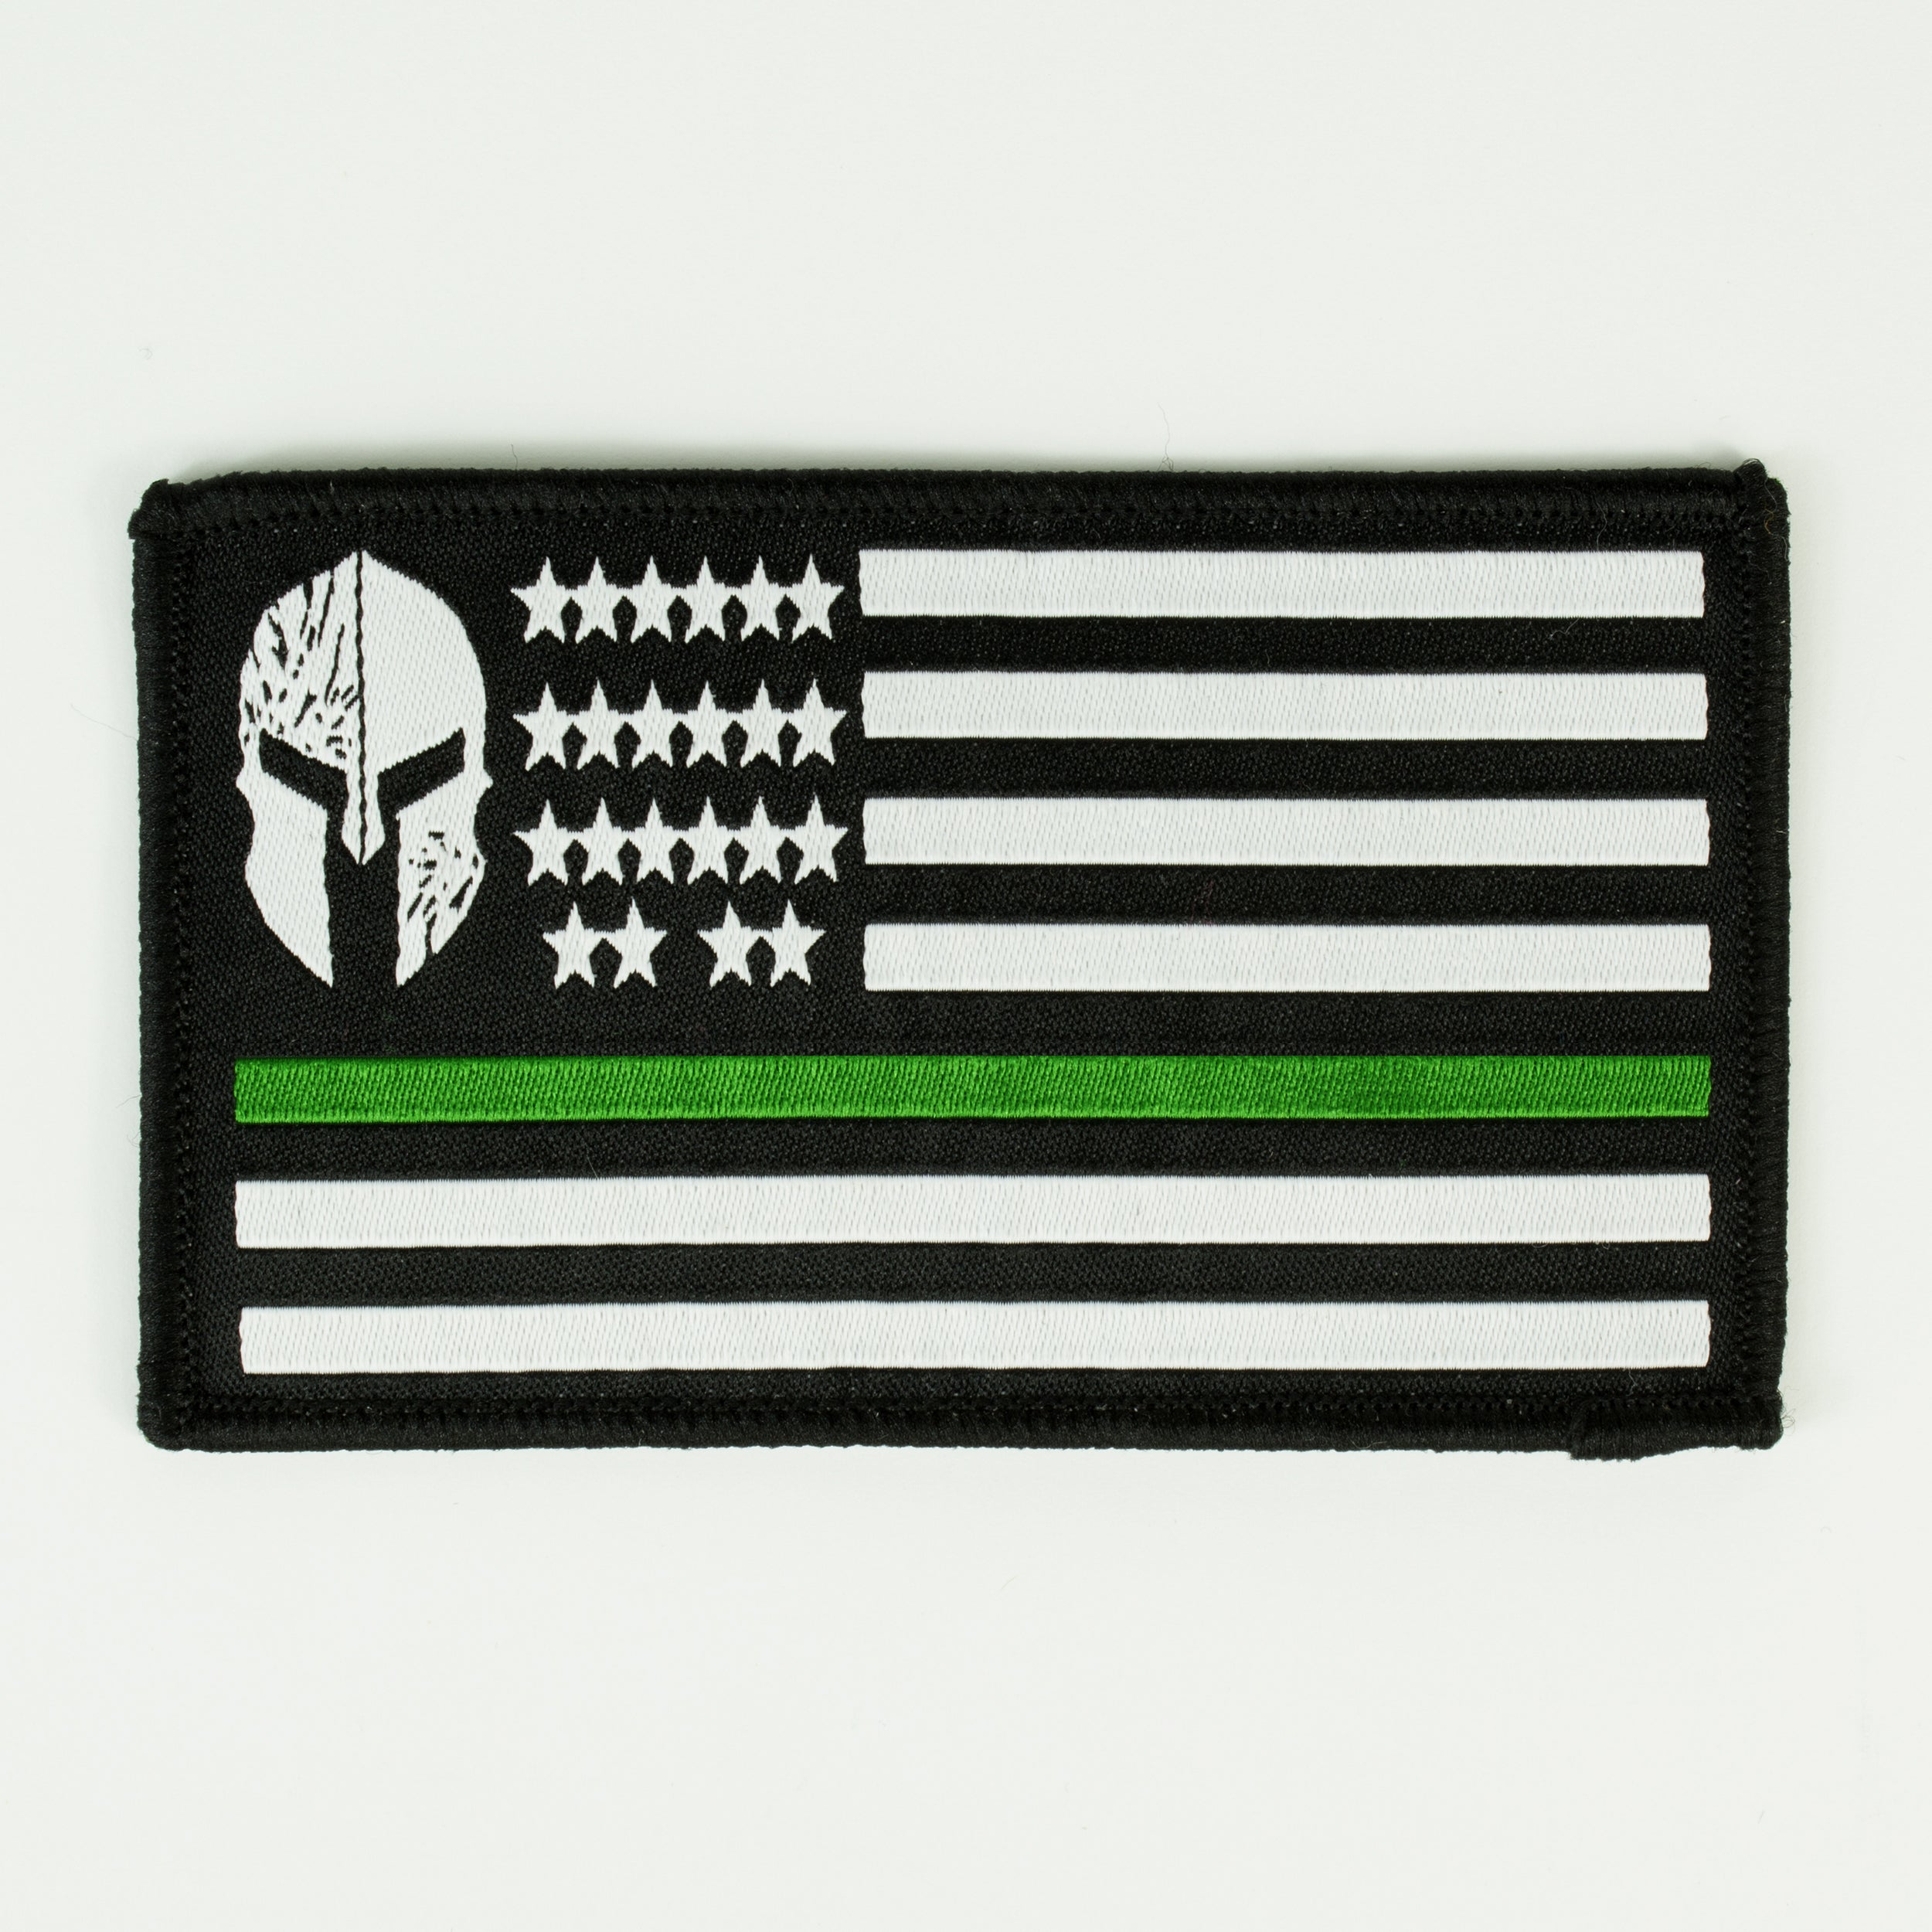 The Thin Green Line patch